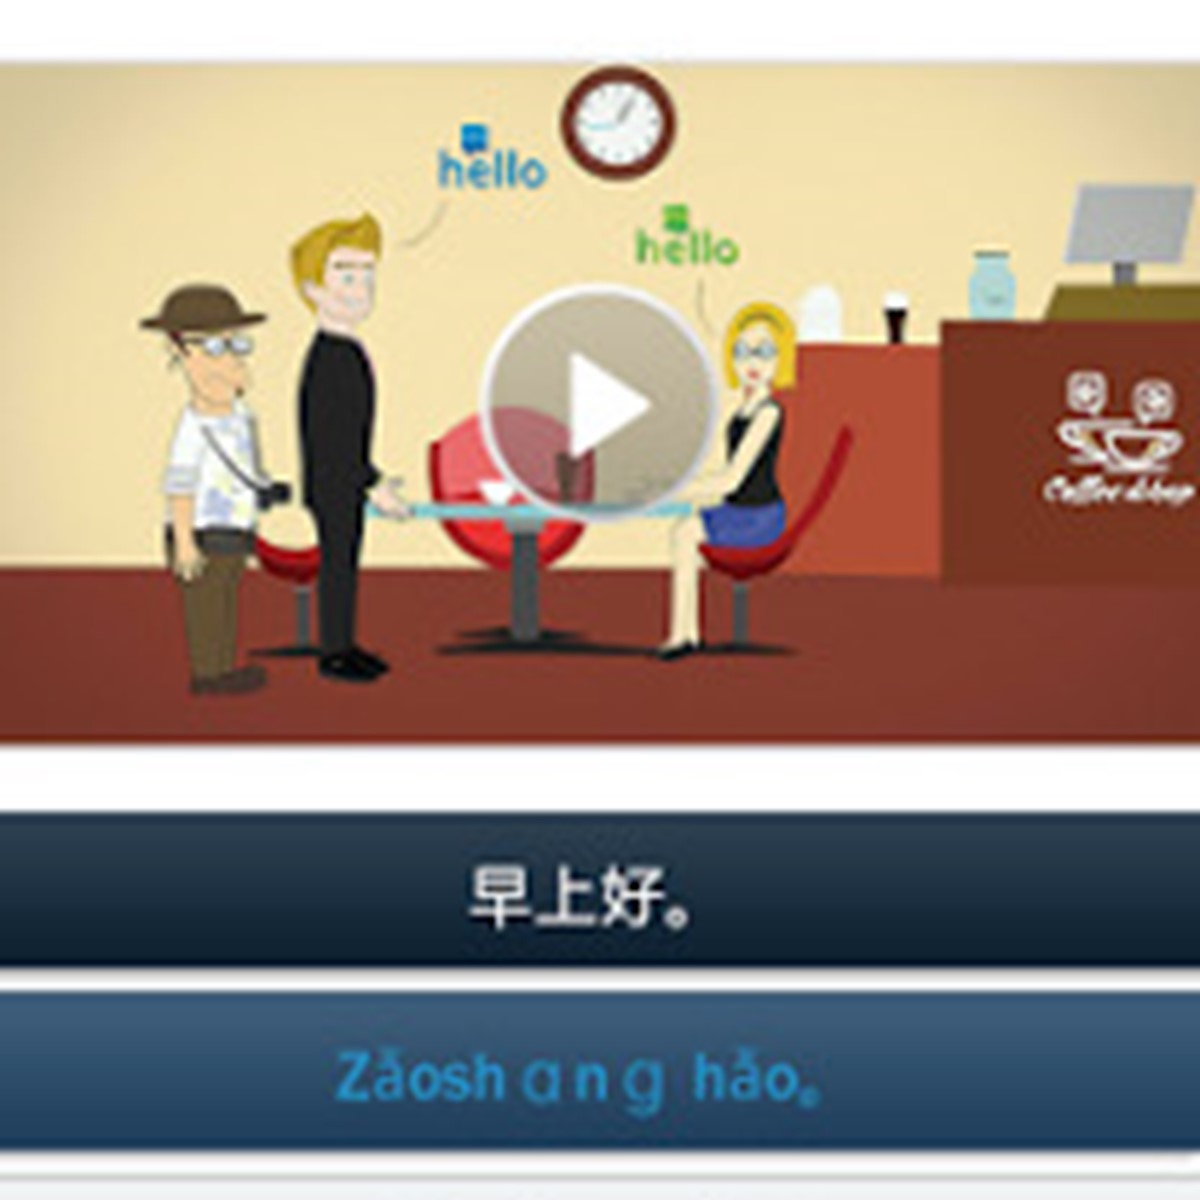 how to say hello in chinese on the phone